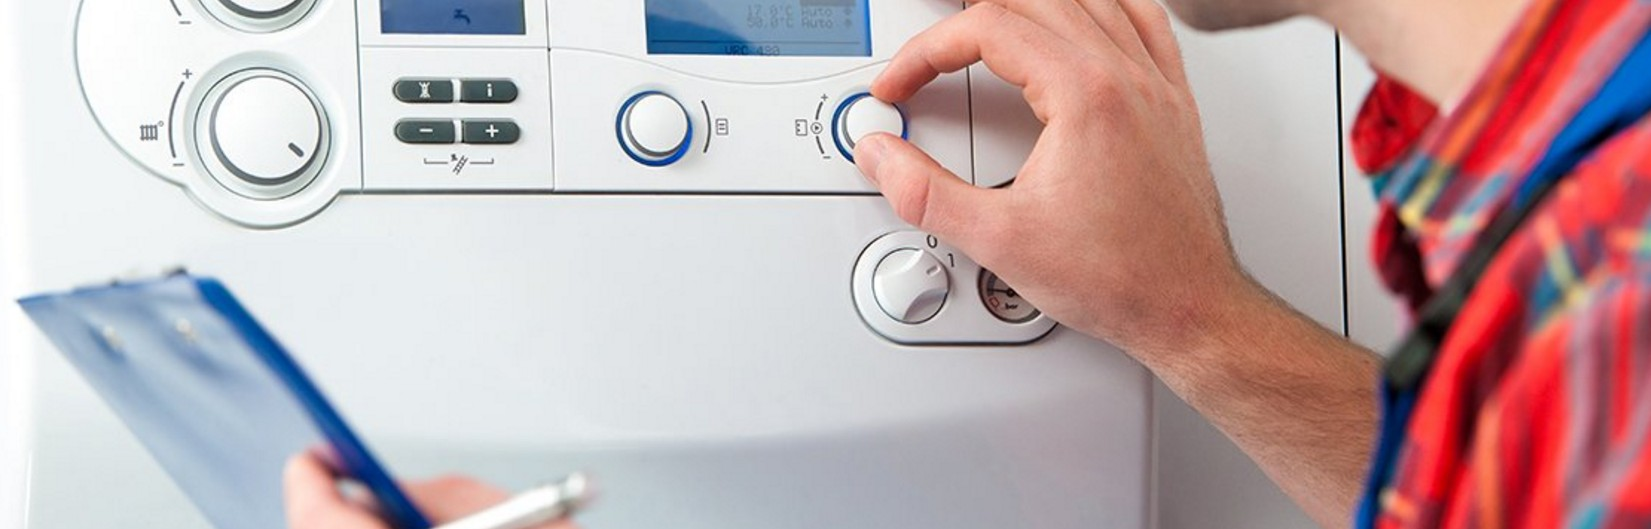 Free Central Heating Grants from the Government's ECO Scheme